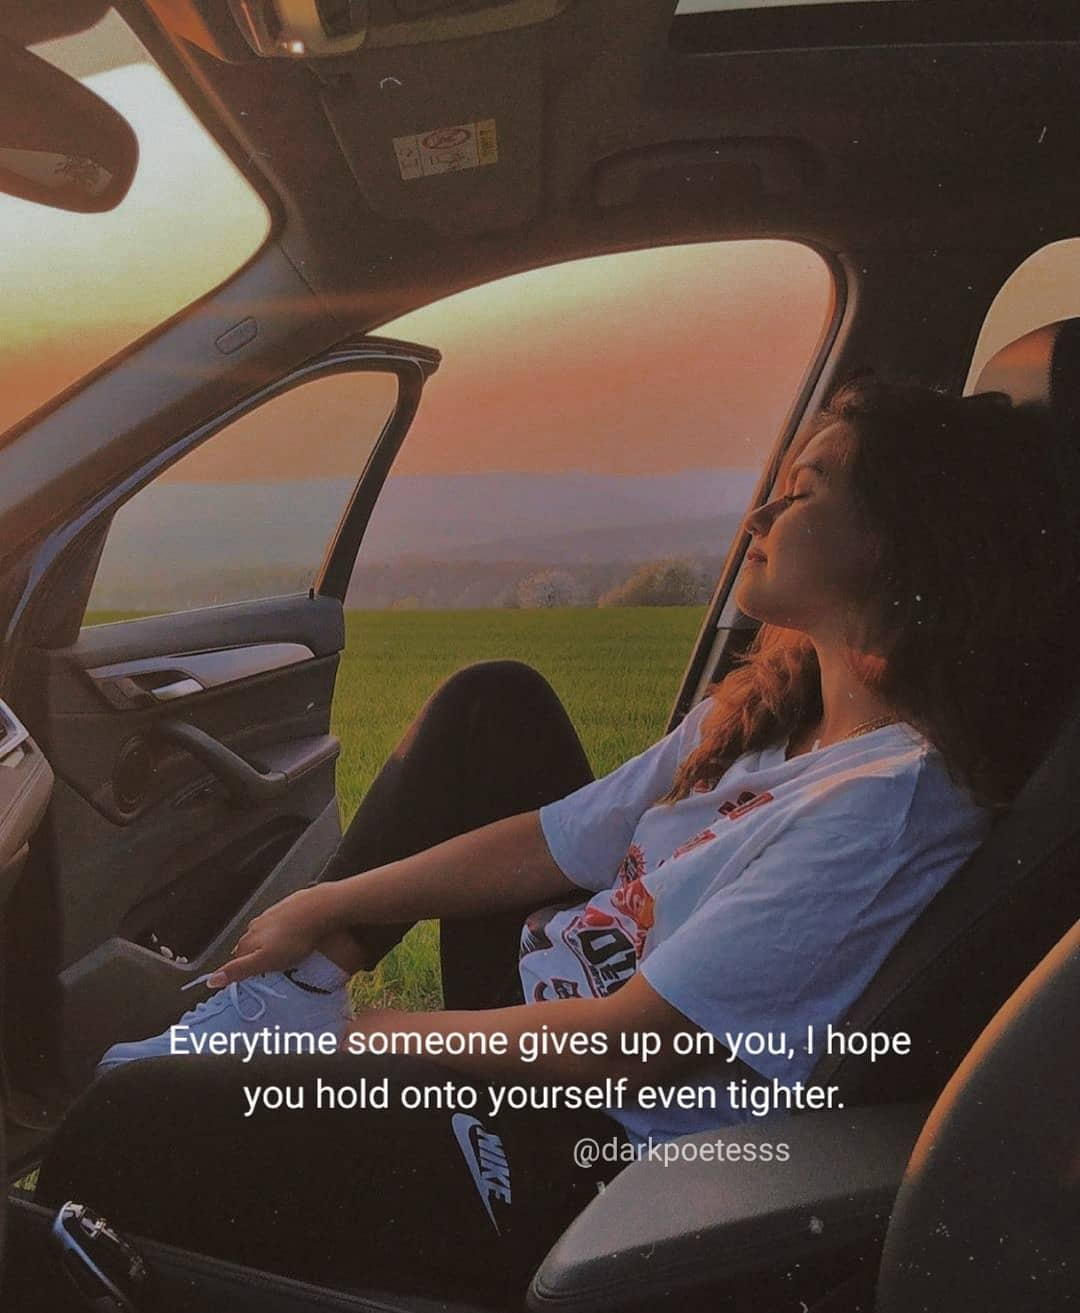 aesthetic deep short quotes